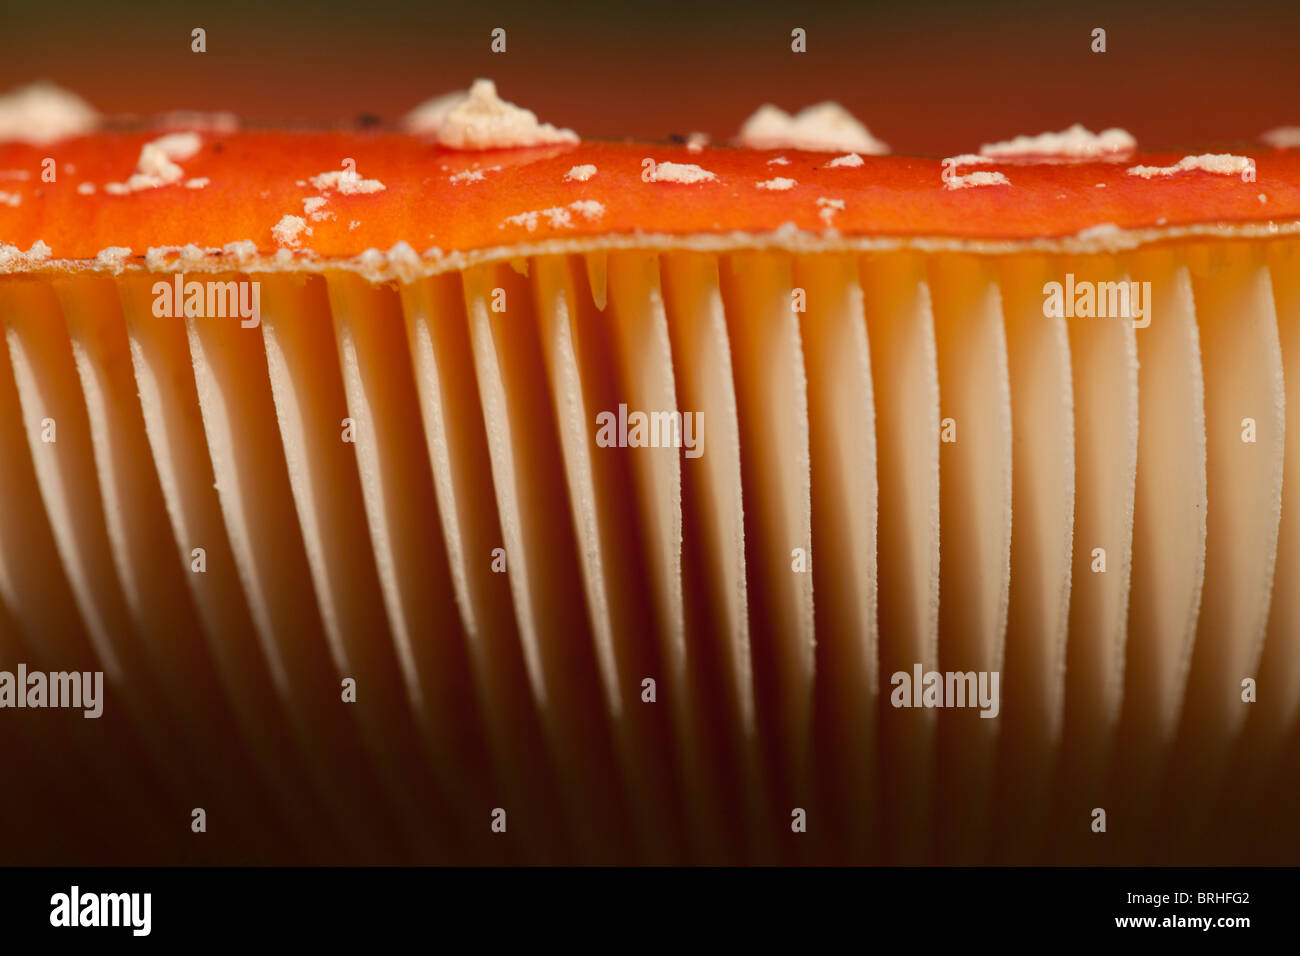 Fly Agaric gills. Fall 2010, Herperduin, Herpen, The Netherlands. - Stock Image